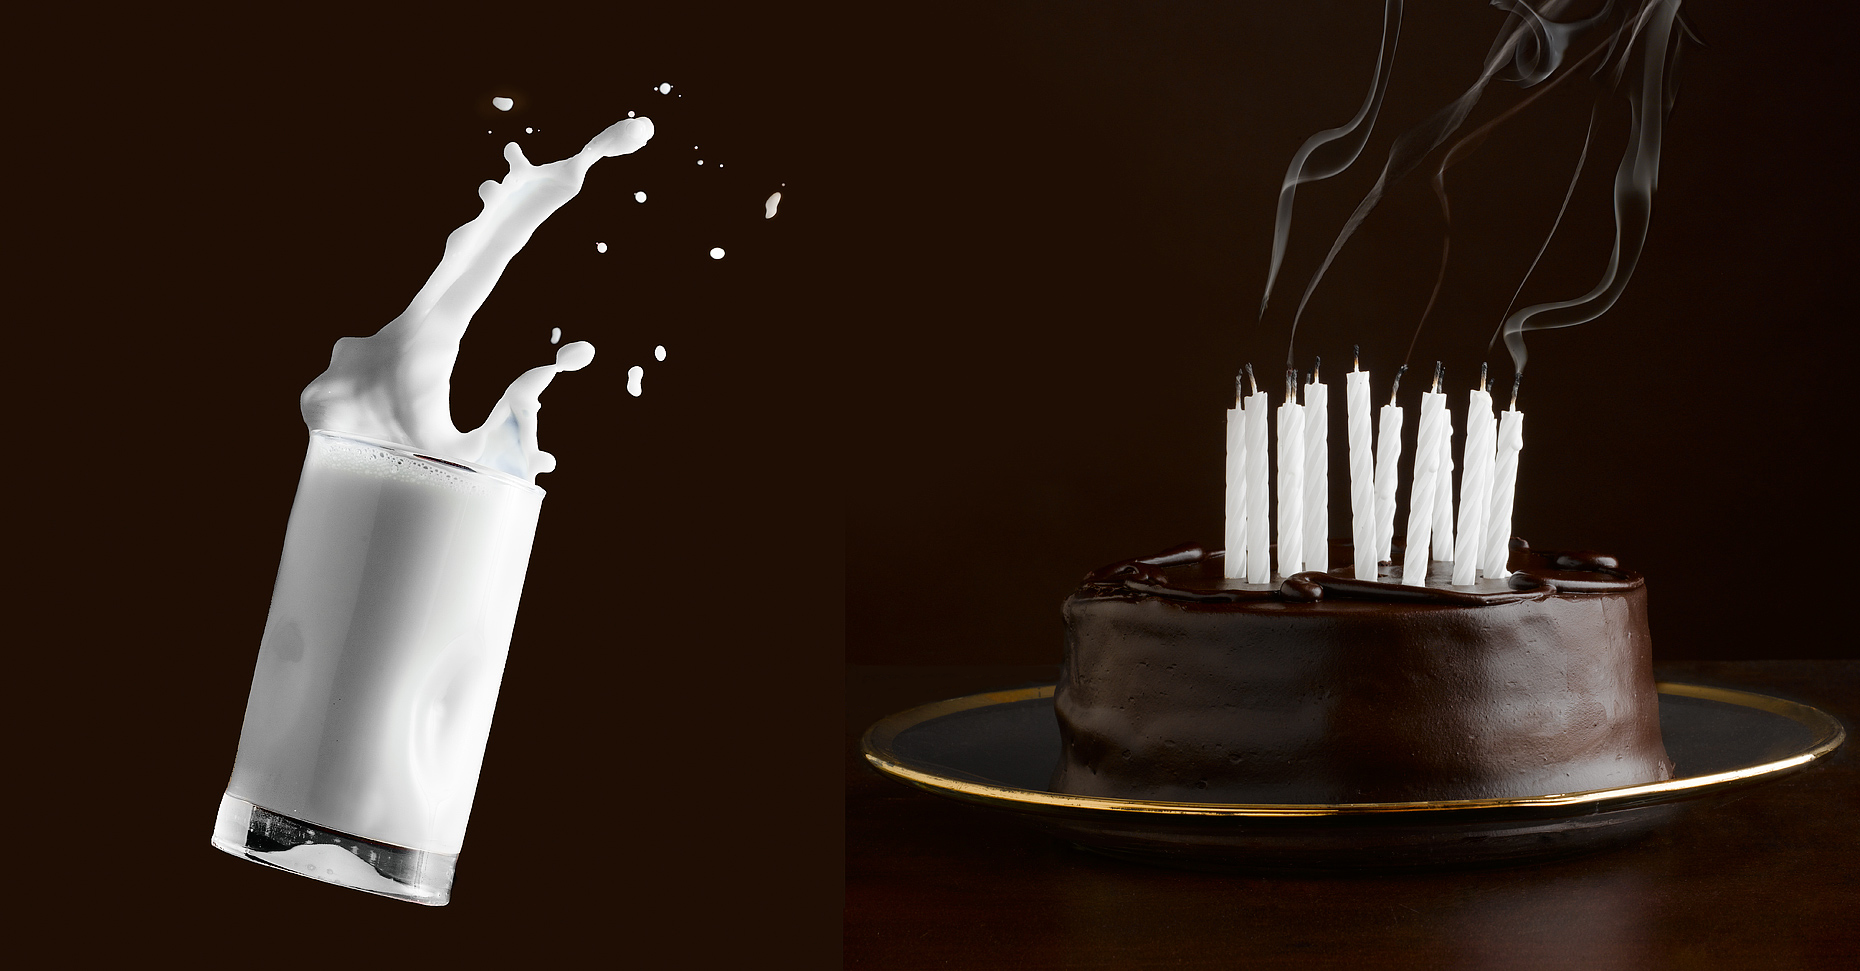 Baking- Milk- Birthday cake- Best food photography.